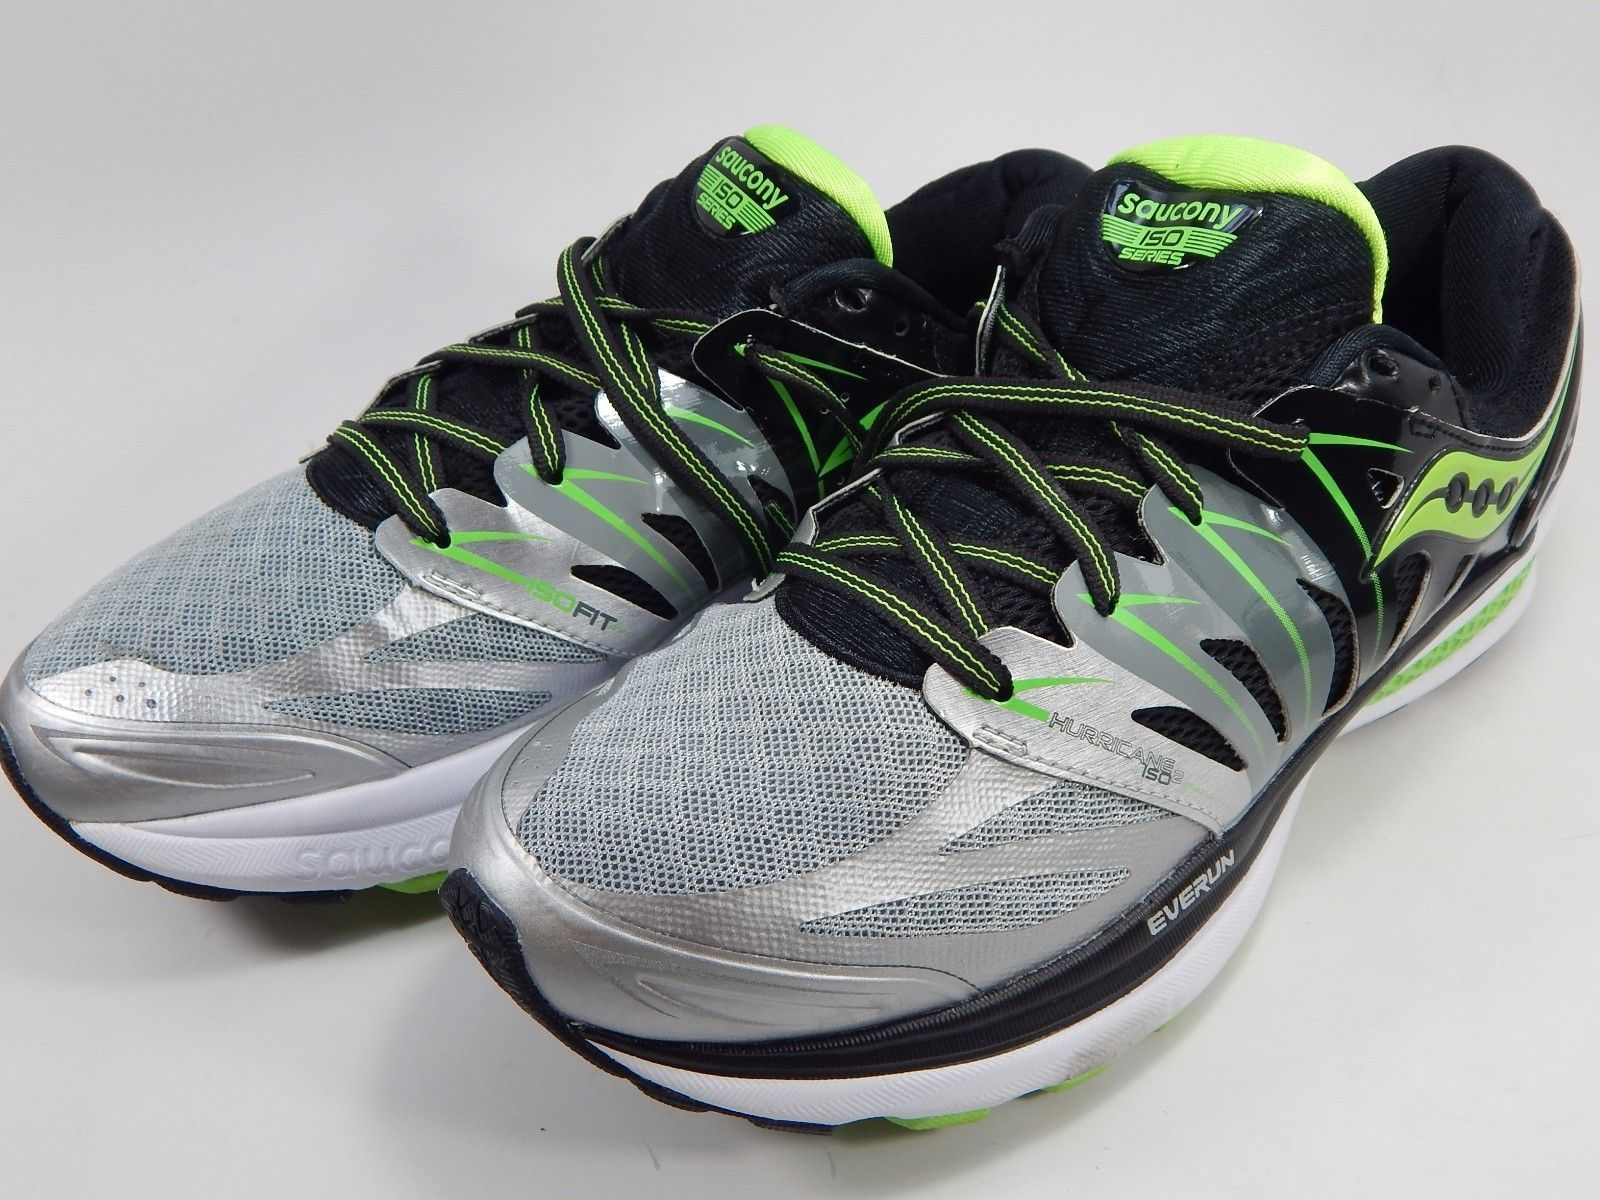 Saucony Hurricane ISO 2 Men's Running Shoes Size US 8.5 M (D) EU 42 S20293-1